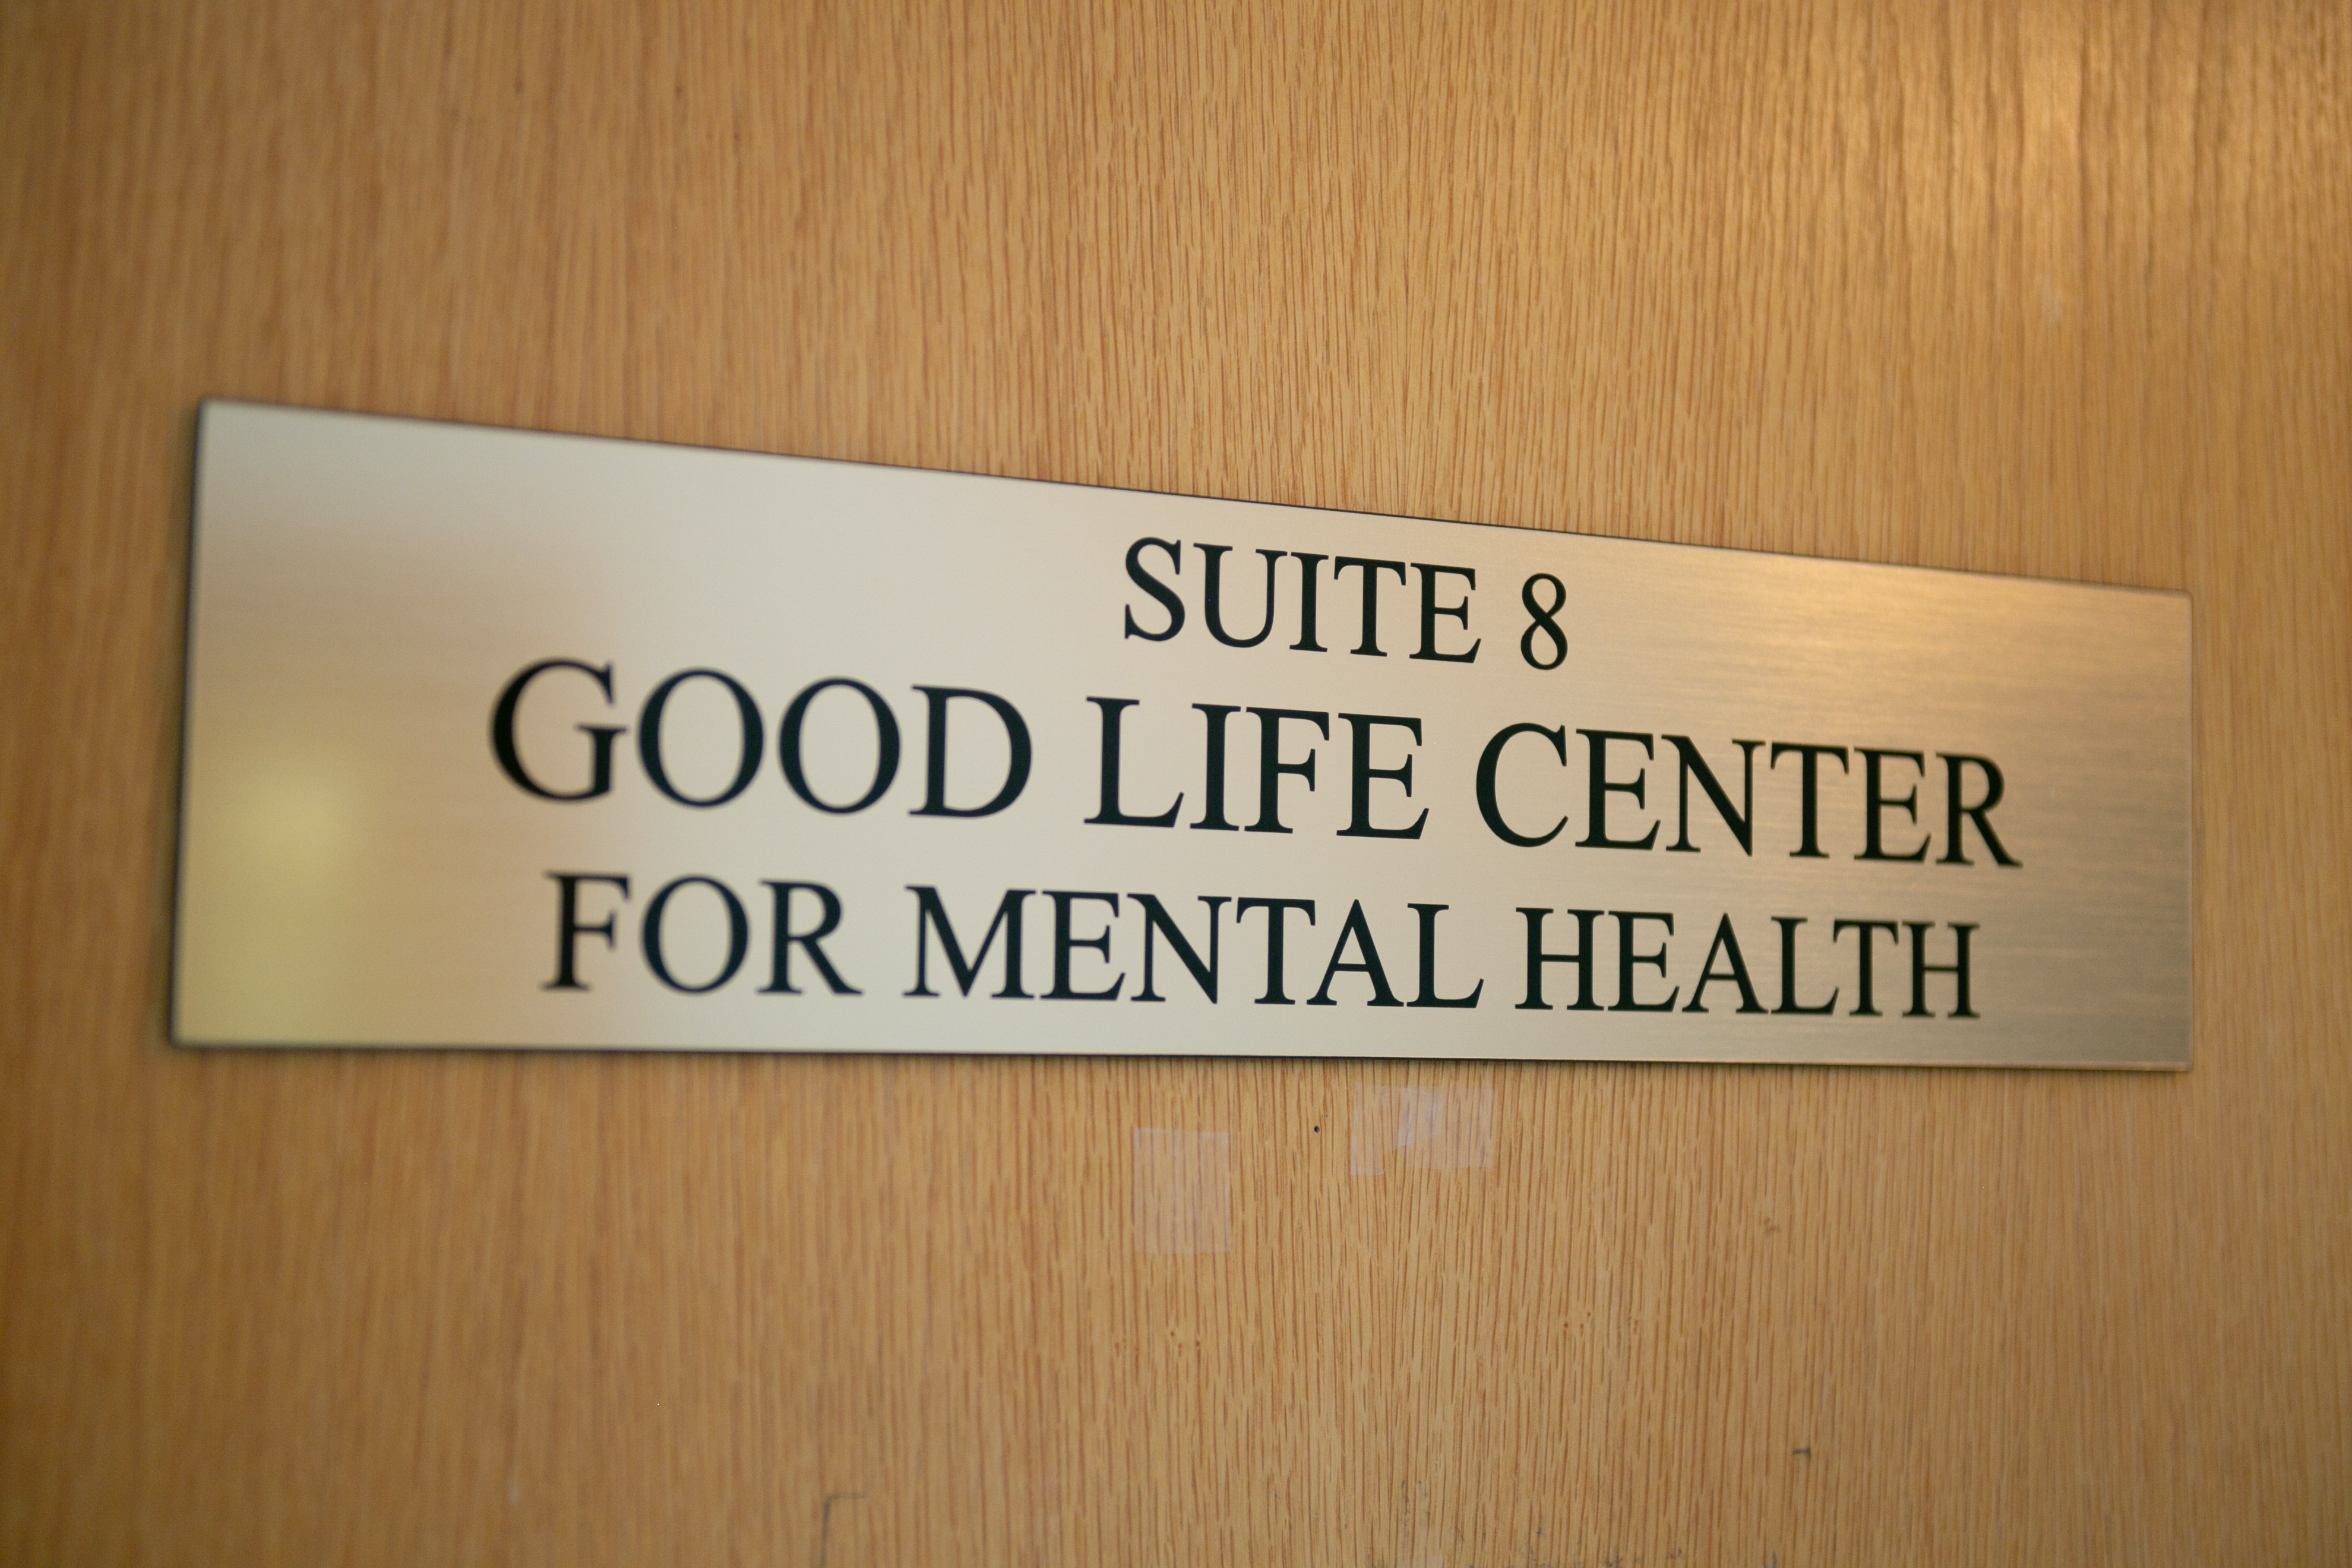 Suite 8 Sign | Our Office | Good Life Center | Therapy Services in Cranford, NJ | 07016